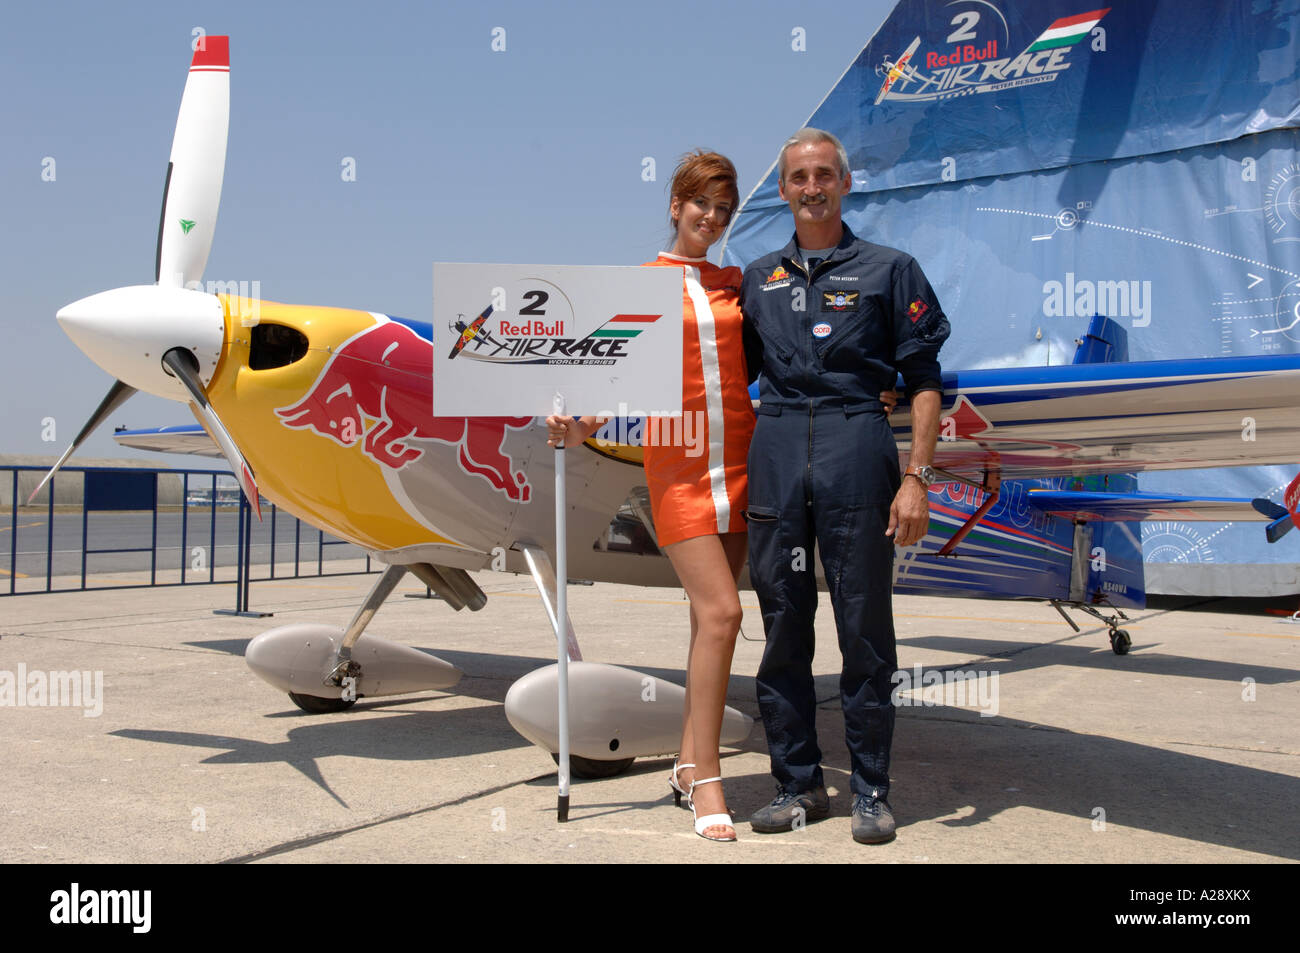 cb90bd0618b Red Bull Air Race pilots with their planes Turkish promo girls on Red Bulls  Airfield -